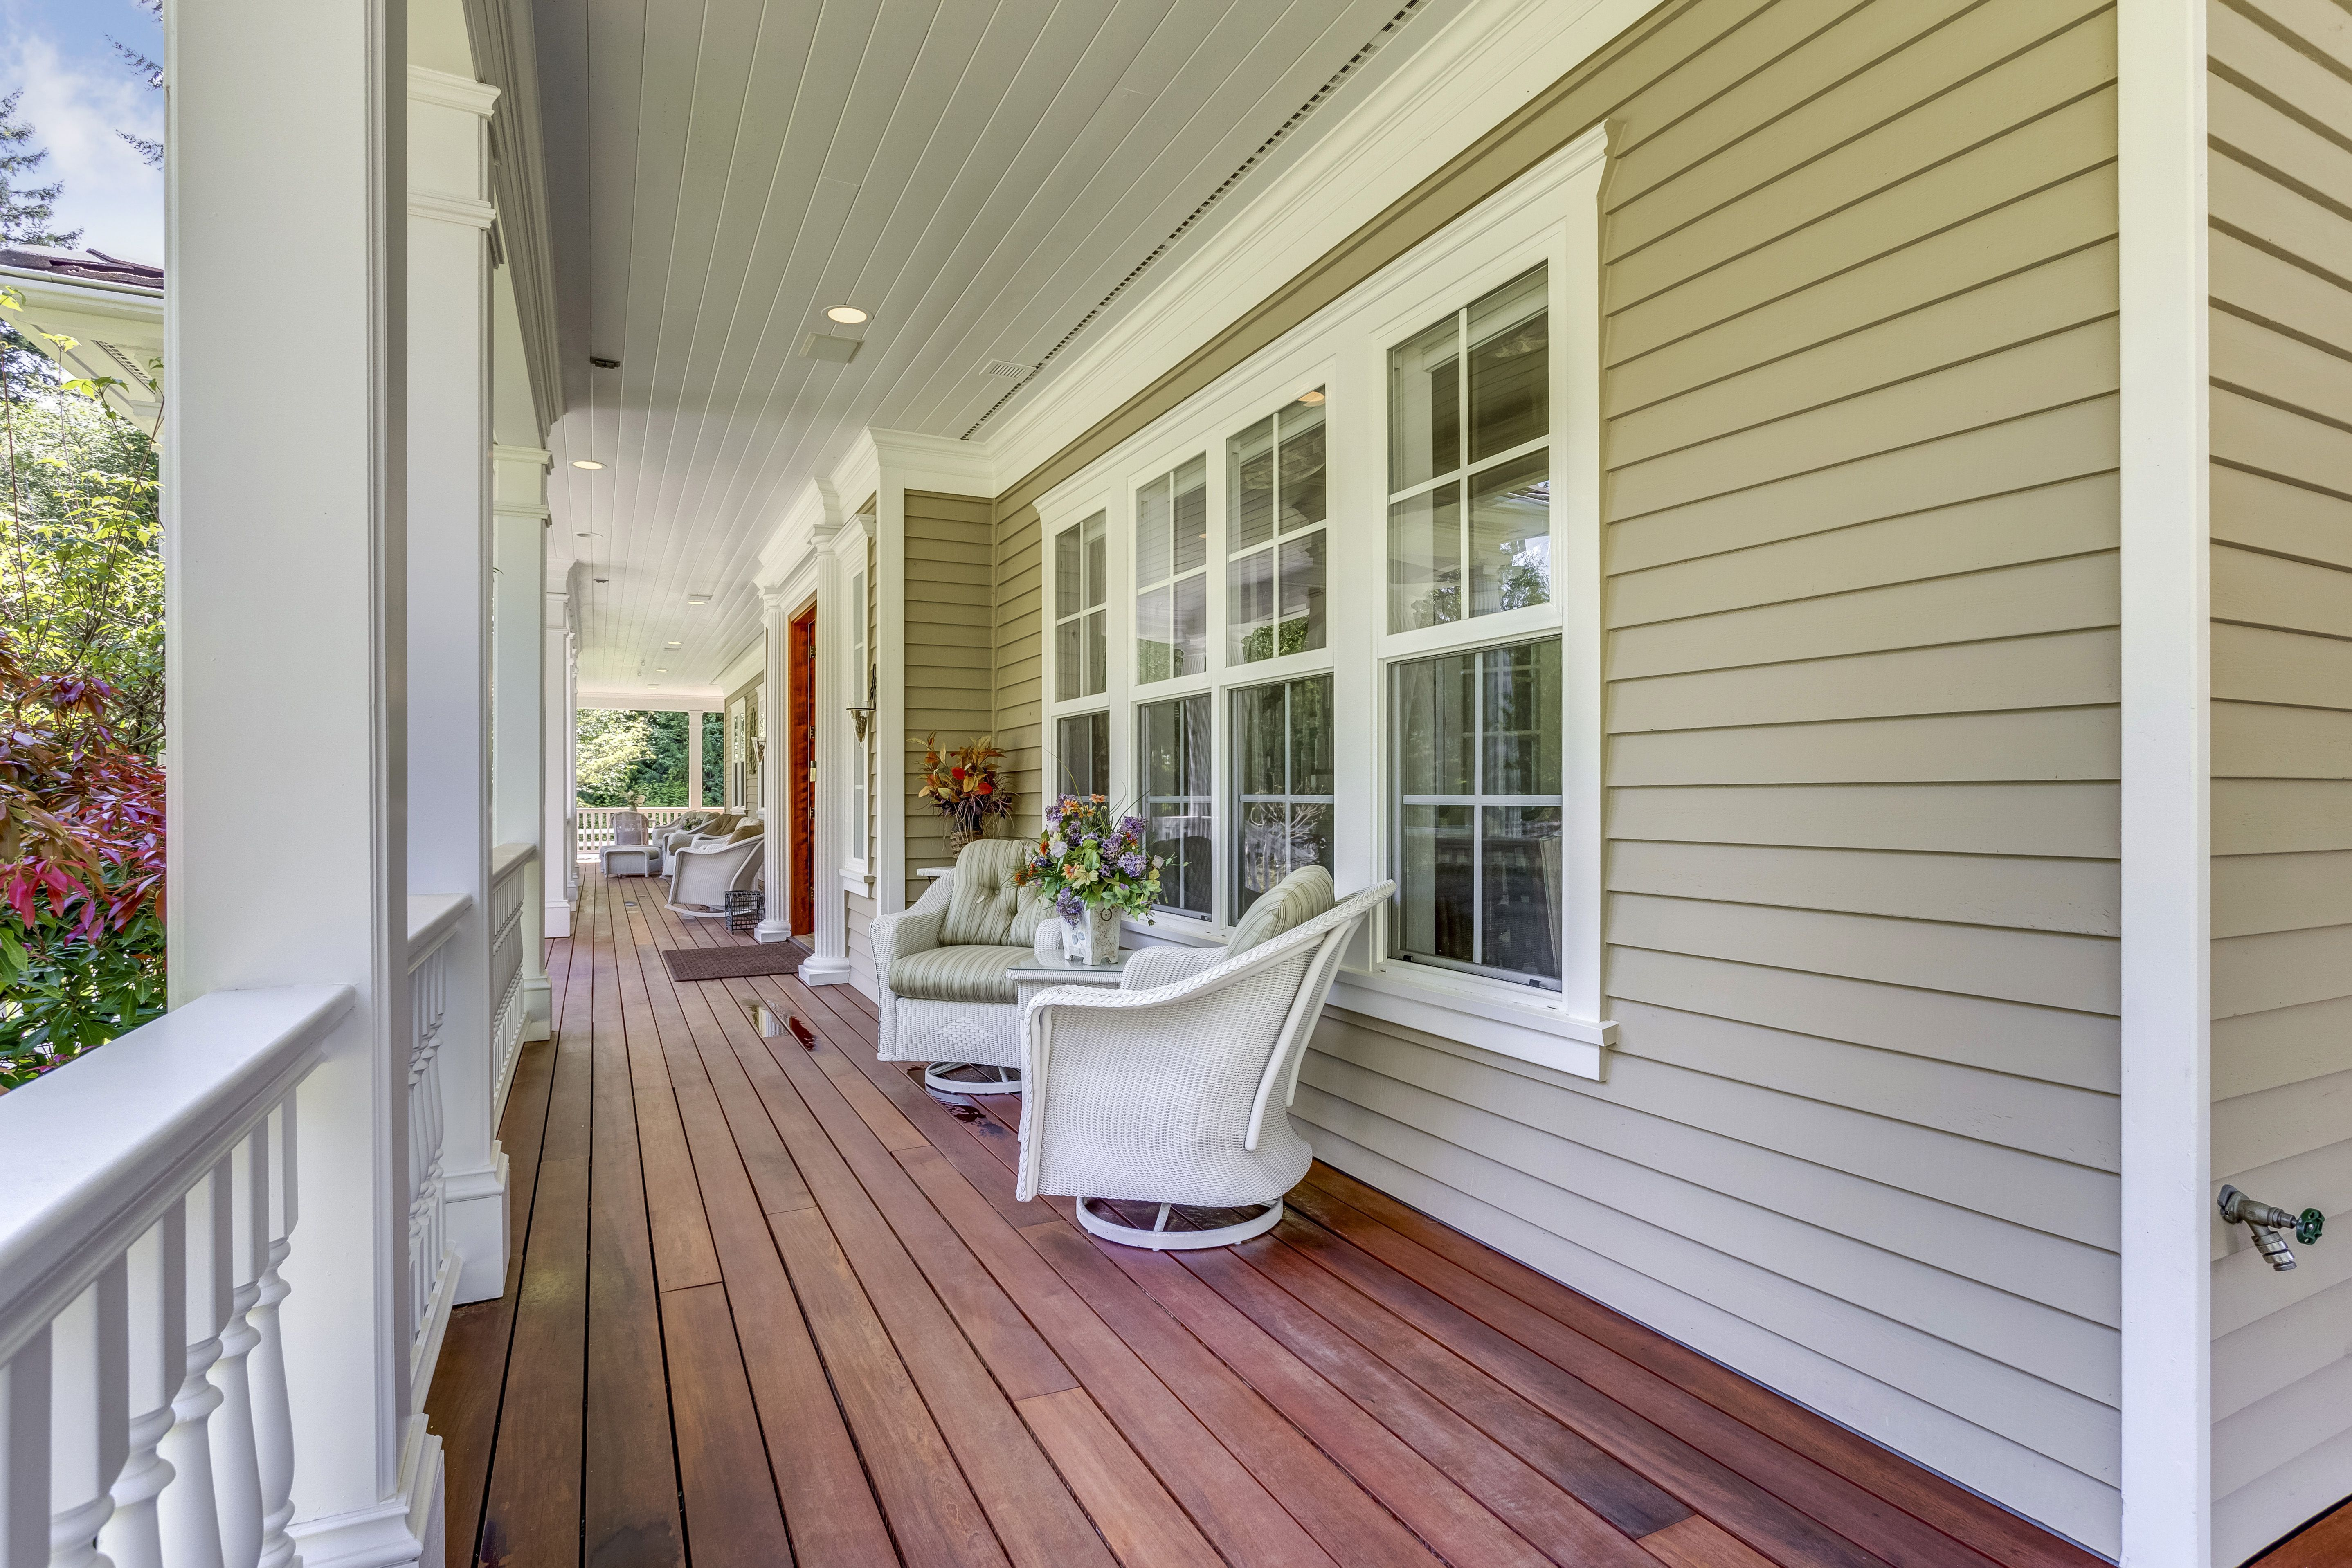 9 Outdoor Deck Designs, Types and Locations on ranch home with basement designs, ranch house furniture, ranch house fencing, ranch house porches, ranch house lighting, ranch house roofing, ranch house painting, ranch house porch design, ranch style home designs, ranch rambler home designs, ranch house blueprints, ranch house architecture, ranch house kitchen, ranch house flooring, ranch house with deck, ranch style house plans with basements, ranch house construction, ranch house plans pricing, ranch patio designs, raised ranch kitchen designs,